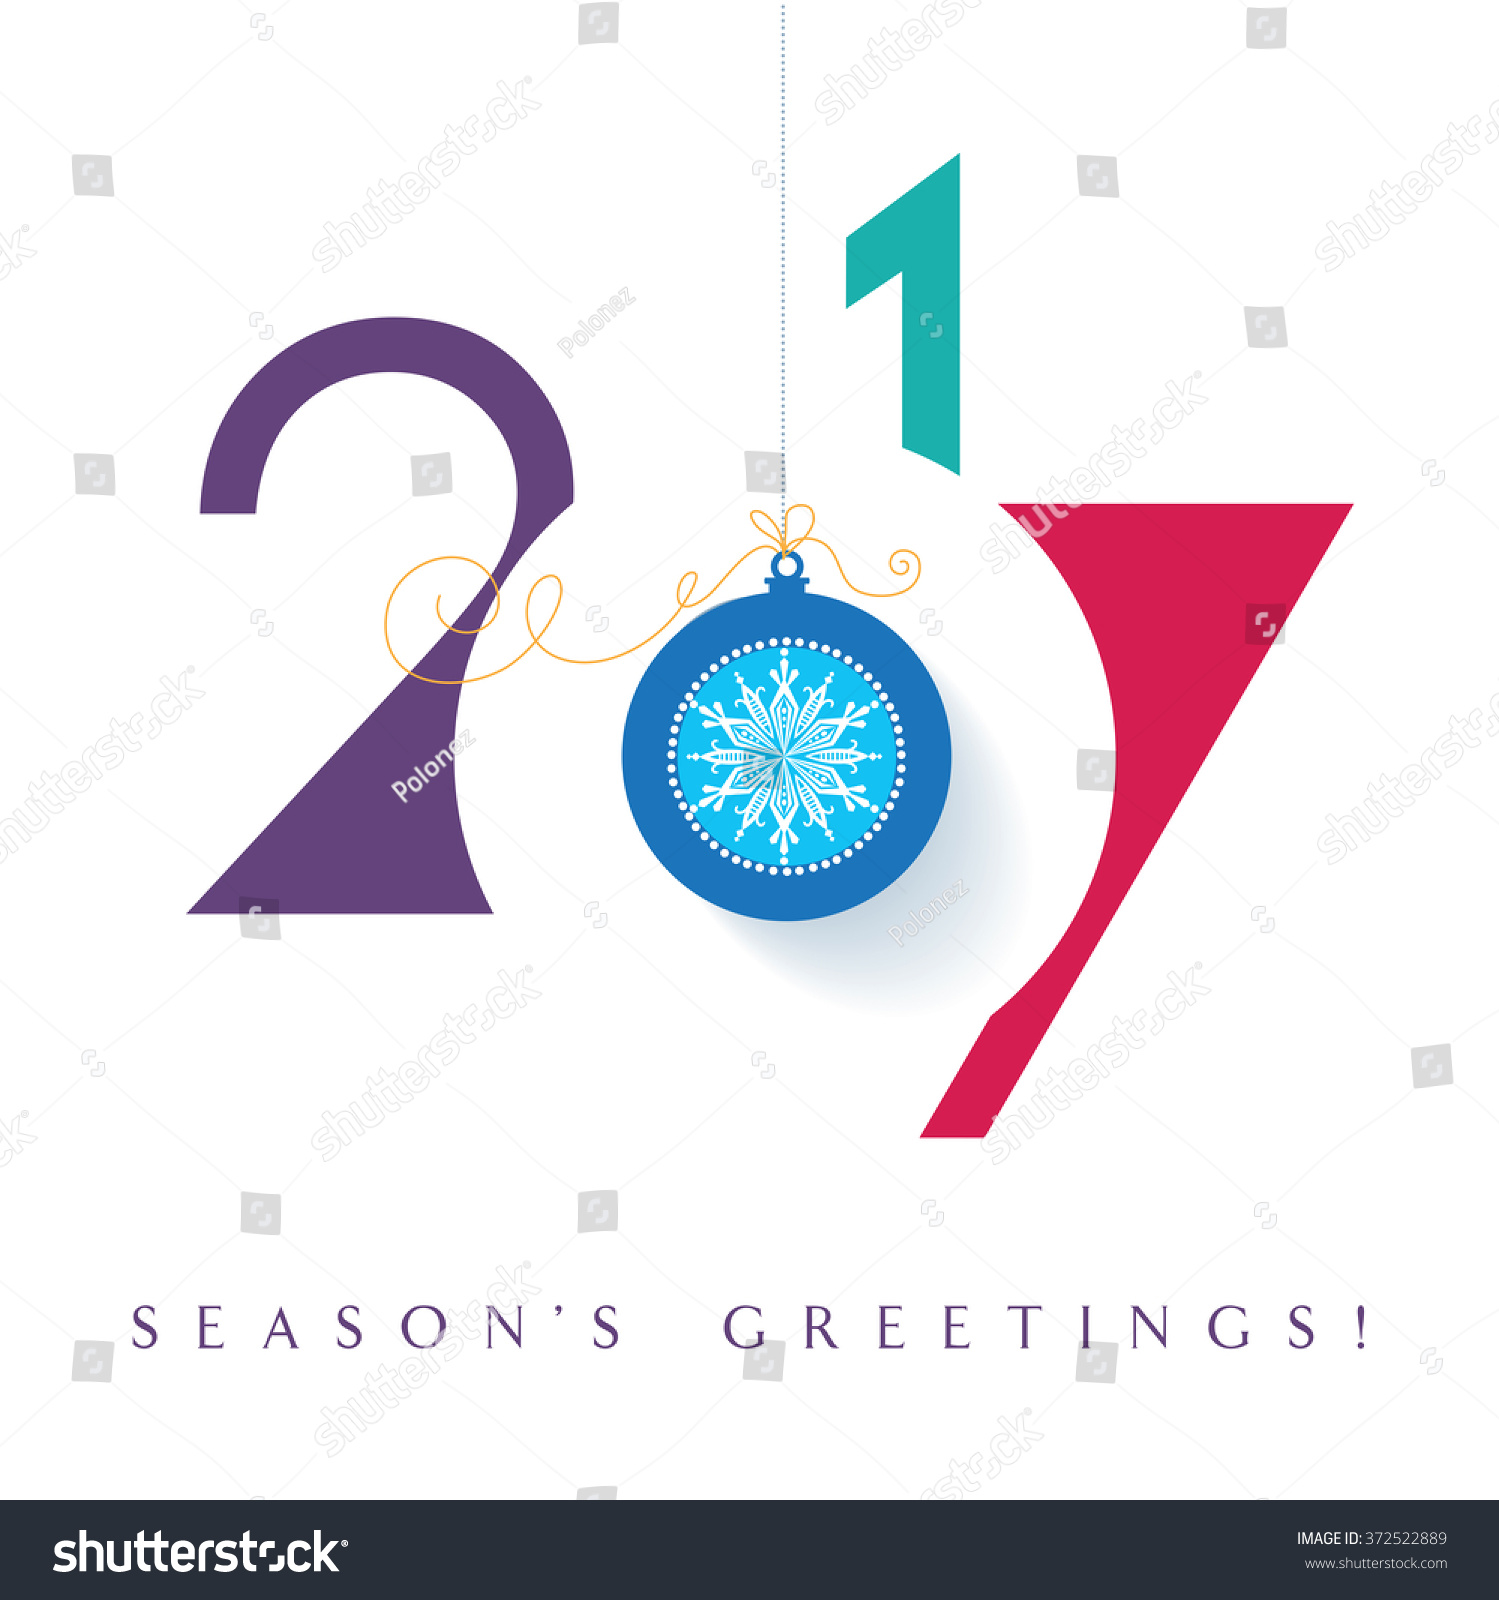 Seasons greetings happy new 2017 year stock vector 372522889 seasons greetings happy new 2017 year colorful contemporary design illustration pooptronica Images